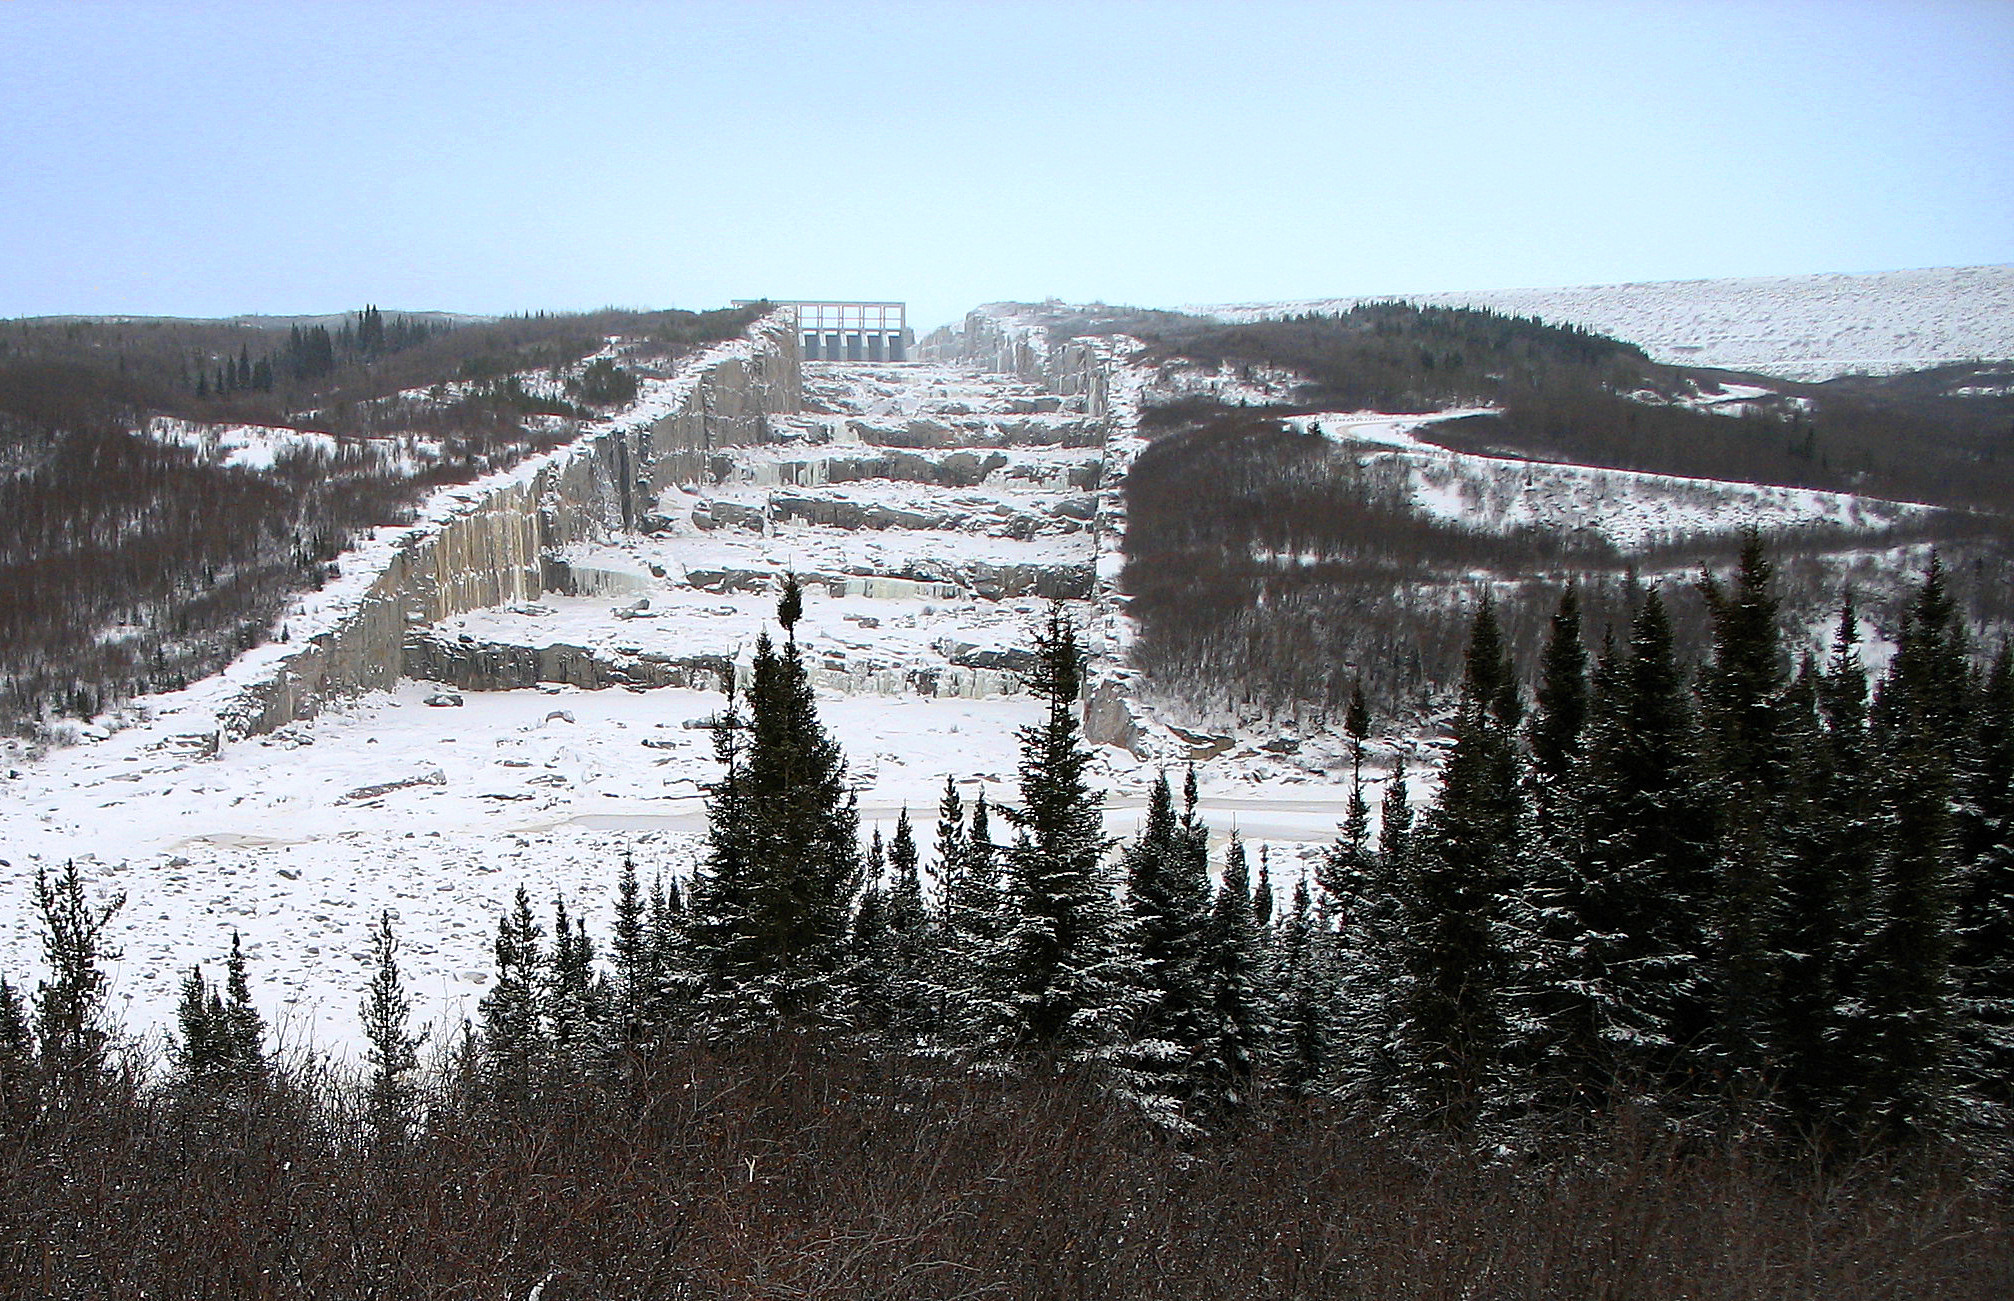 The spillway of the Robert-Bourassa Dam (formerly La Grande-2). This dam was one of the dams in the James Bay Projects. Photo by: P199 at Wikimedia Commons.